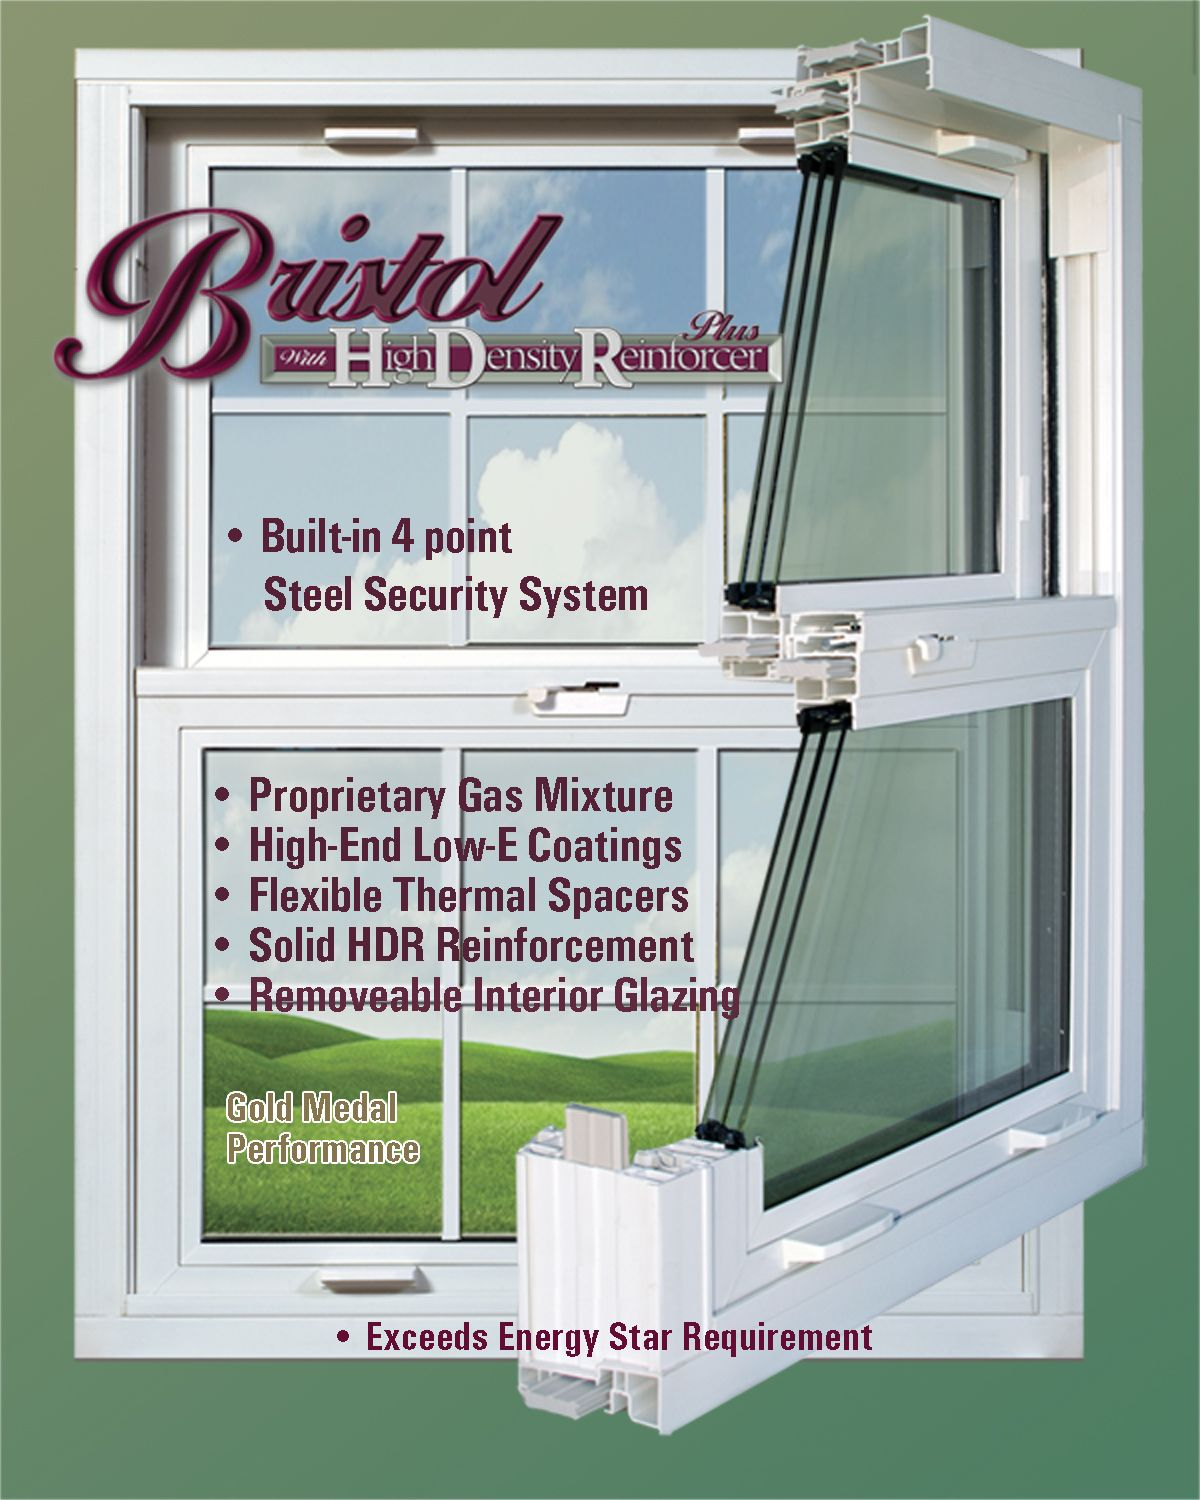 Quality Bristol Windows with Triple Glass, HDR and Q-IV Security System